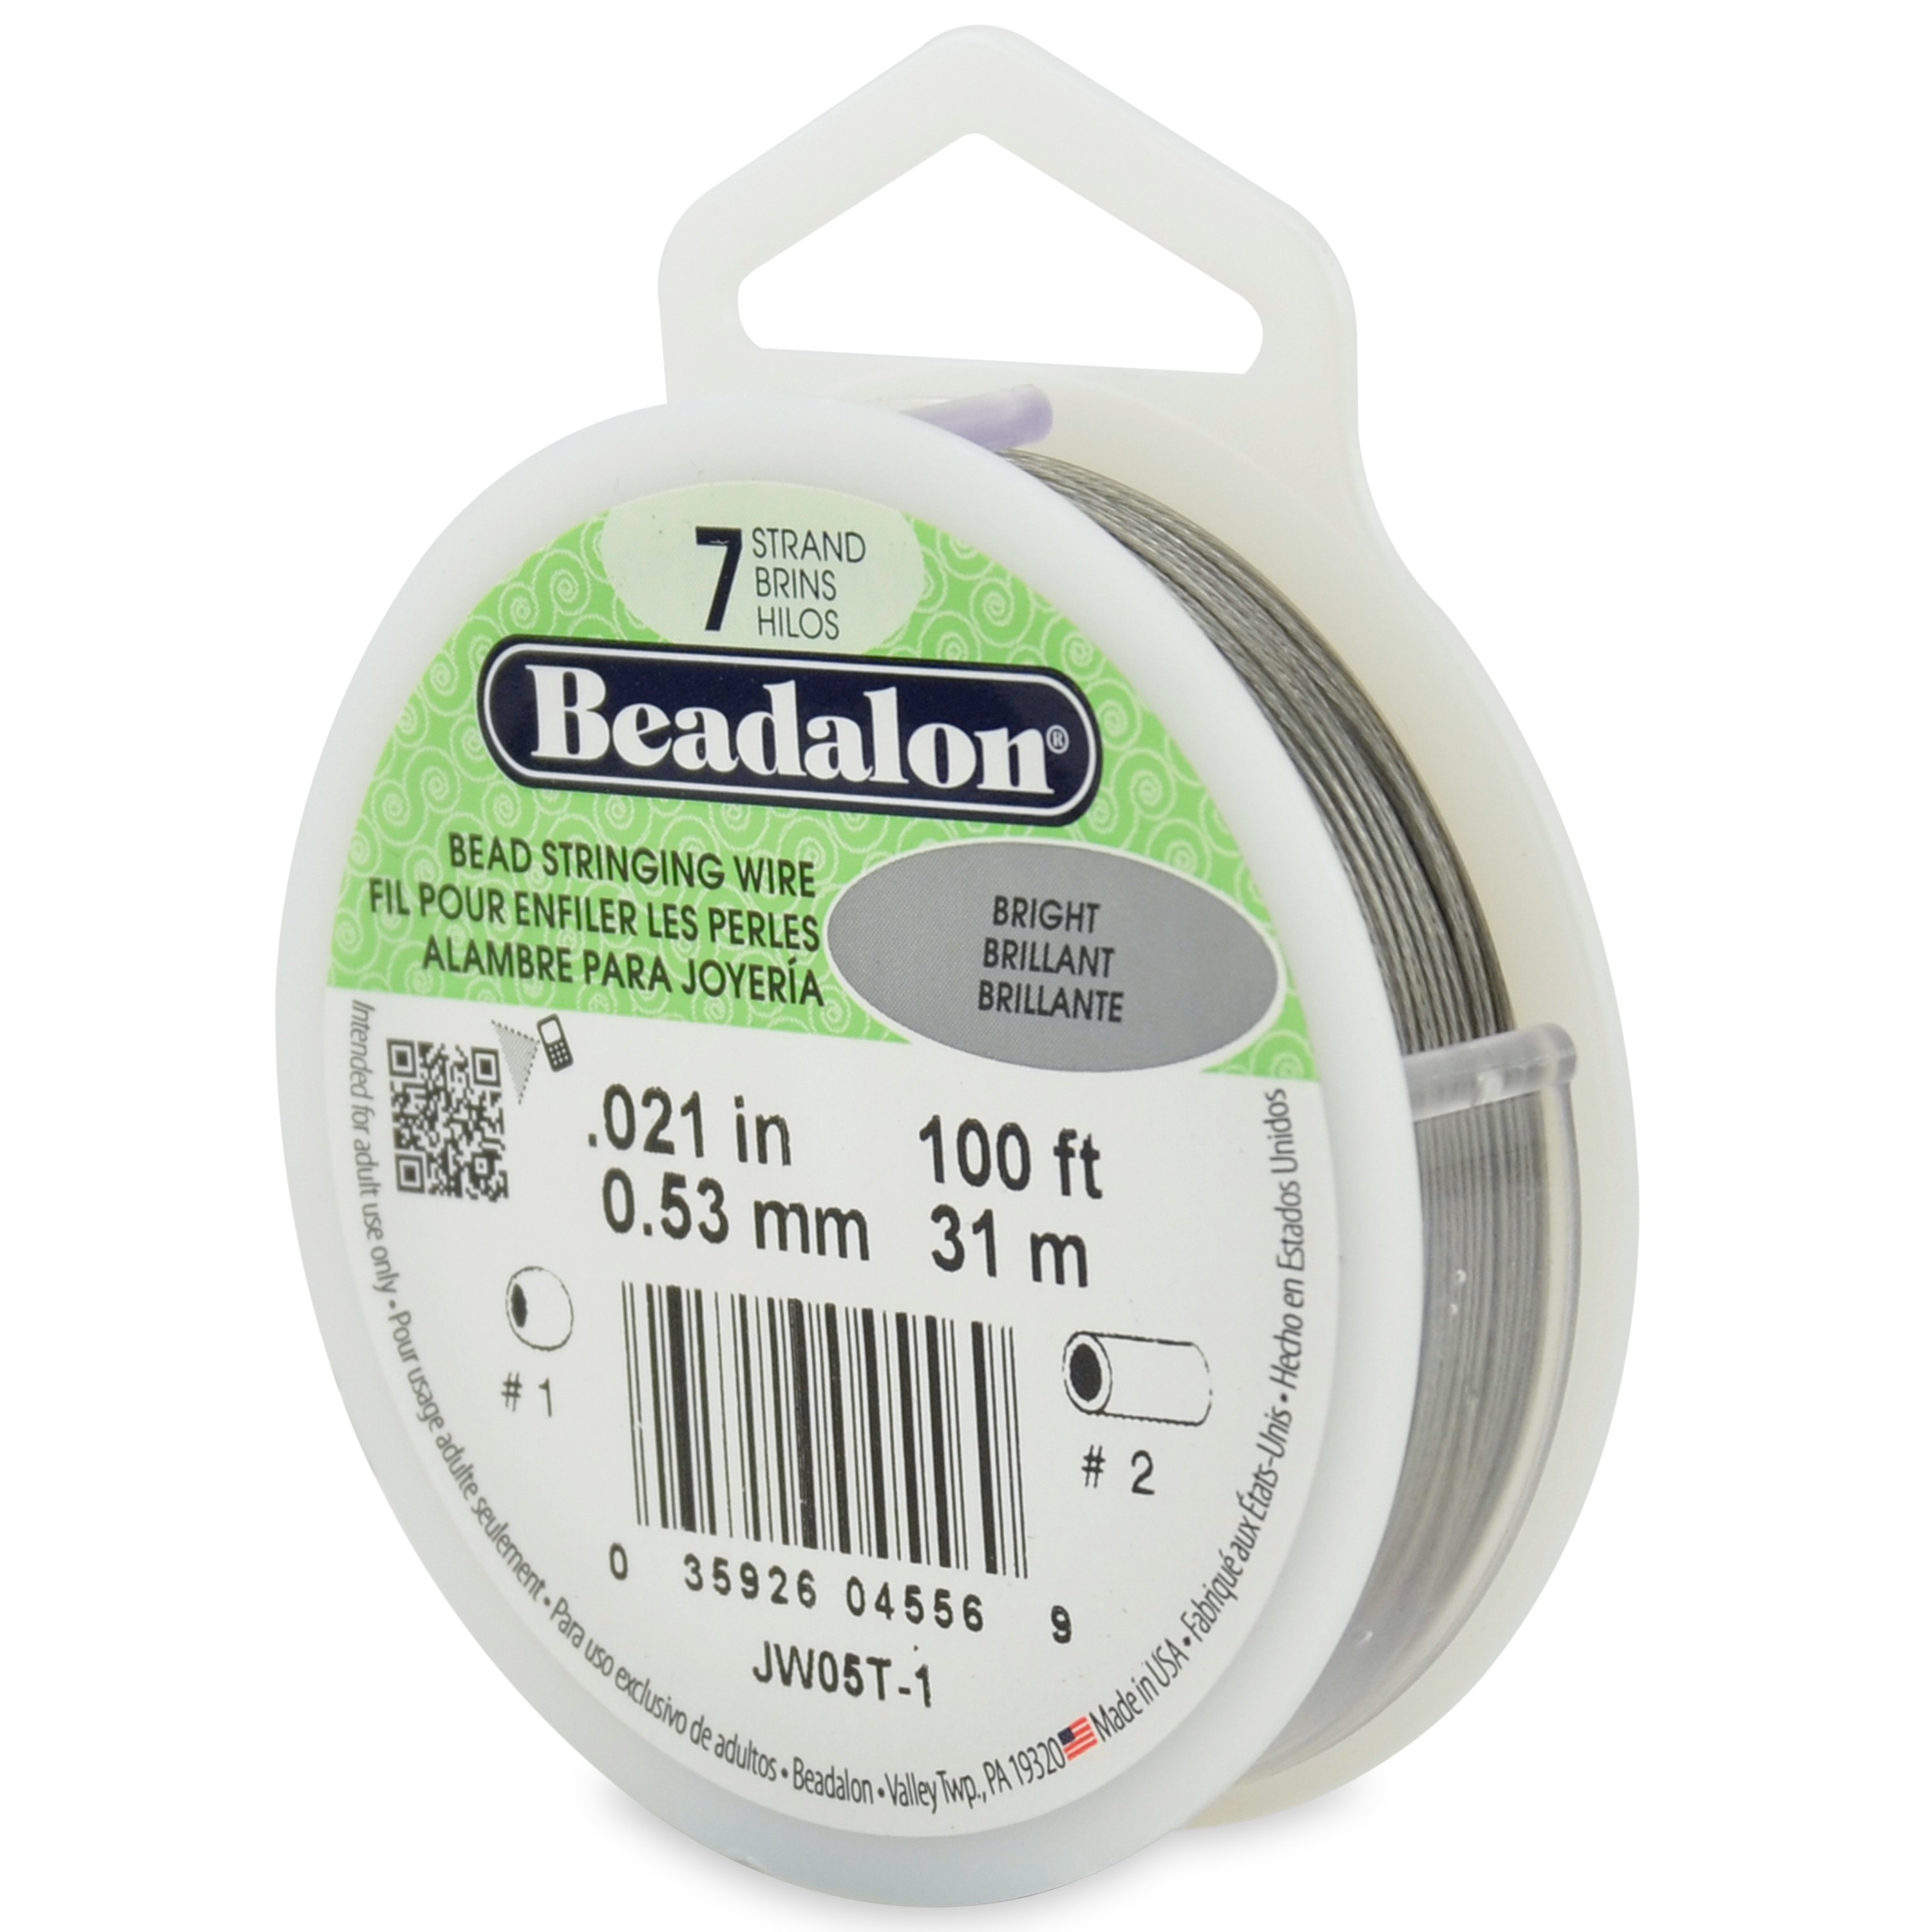 7 Strand Stainless Steel Bead Stringing Wire, .021 in (0.53 mm), Bright, 100 ft (31 m)